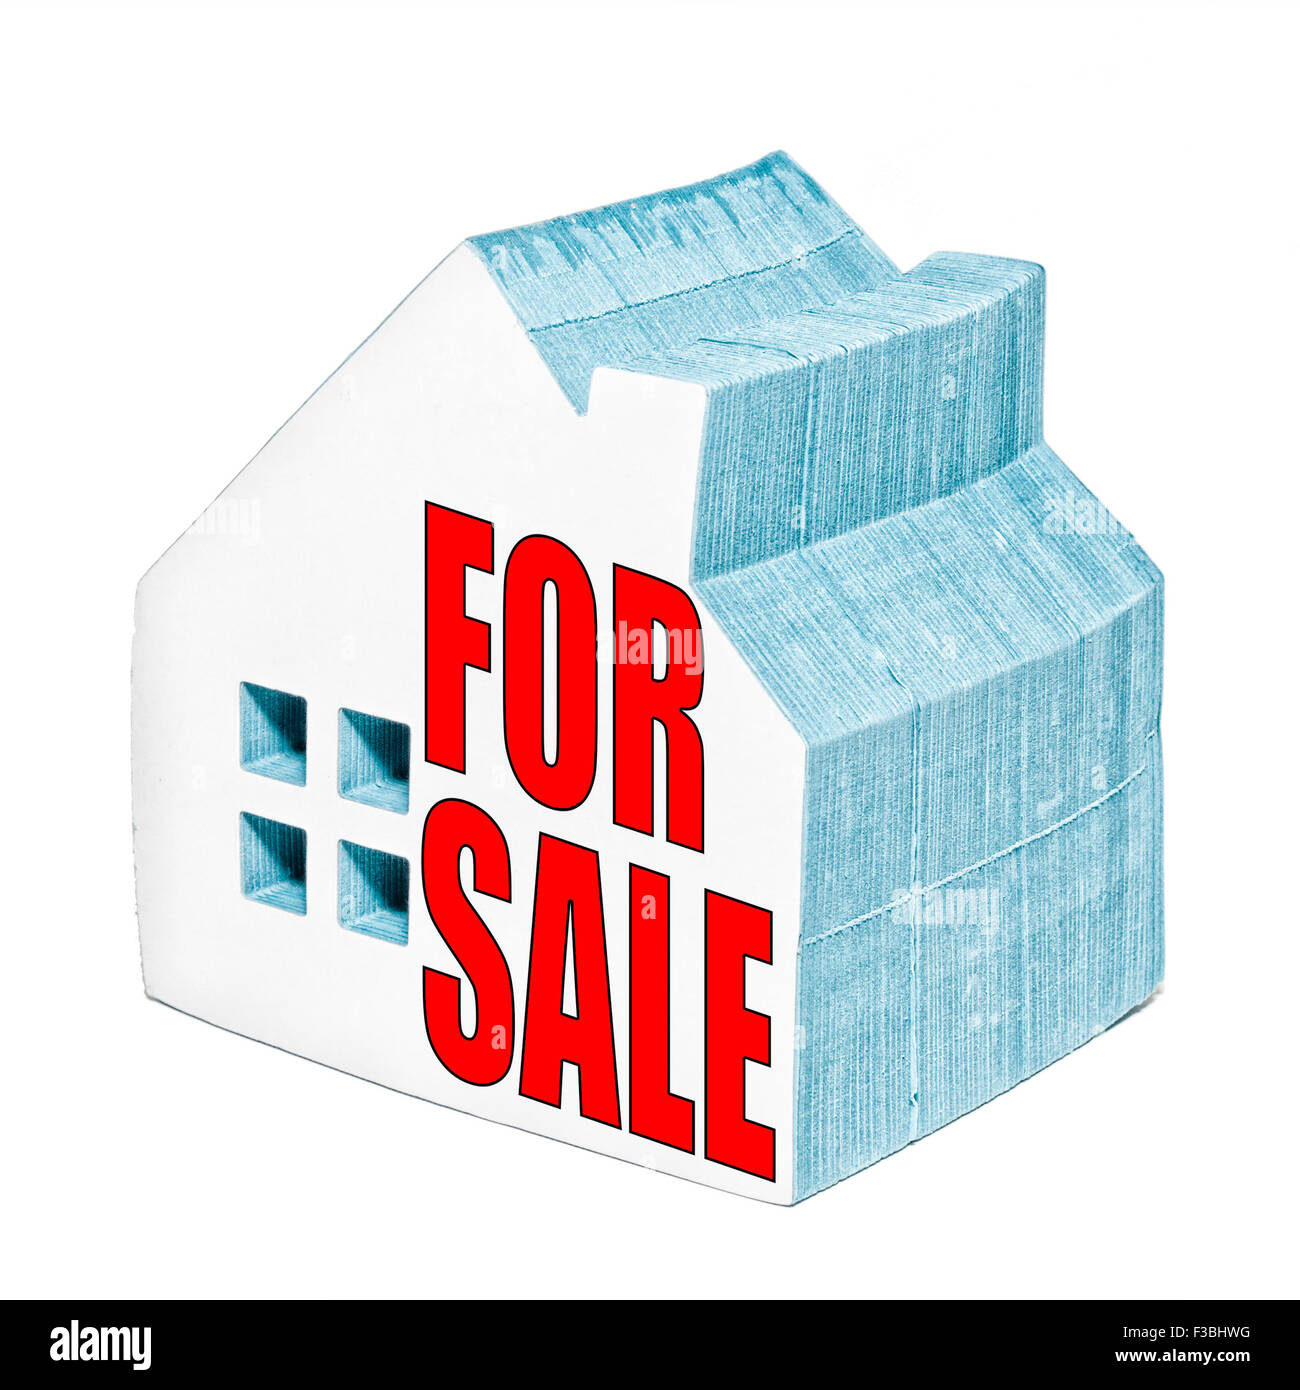 House for sale concept made from a house shaped post it notepad. Stock Photo